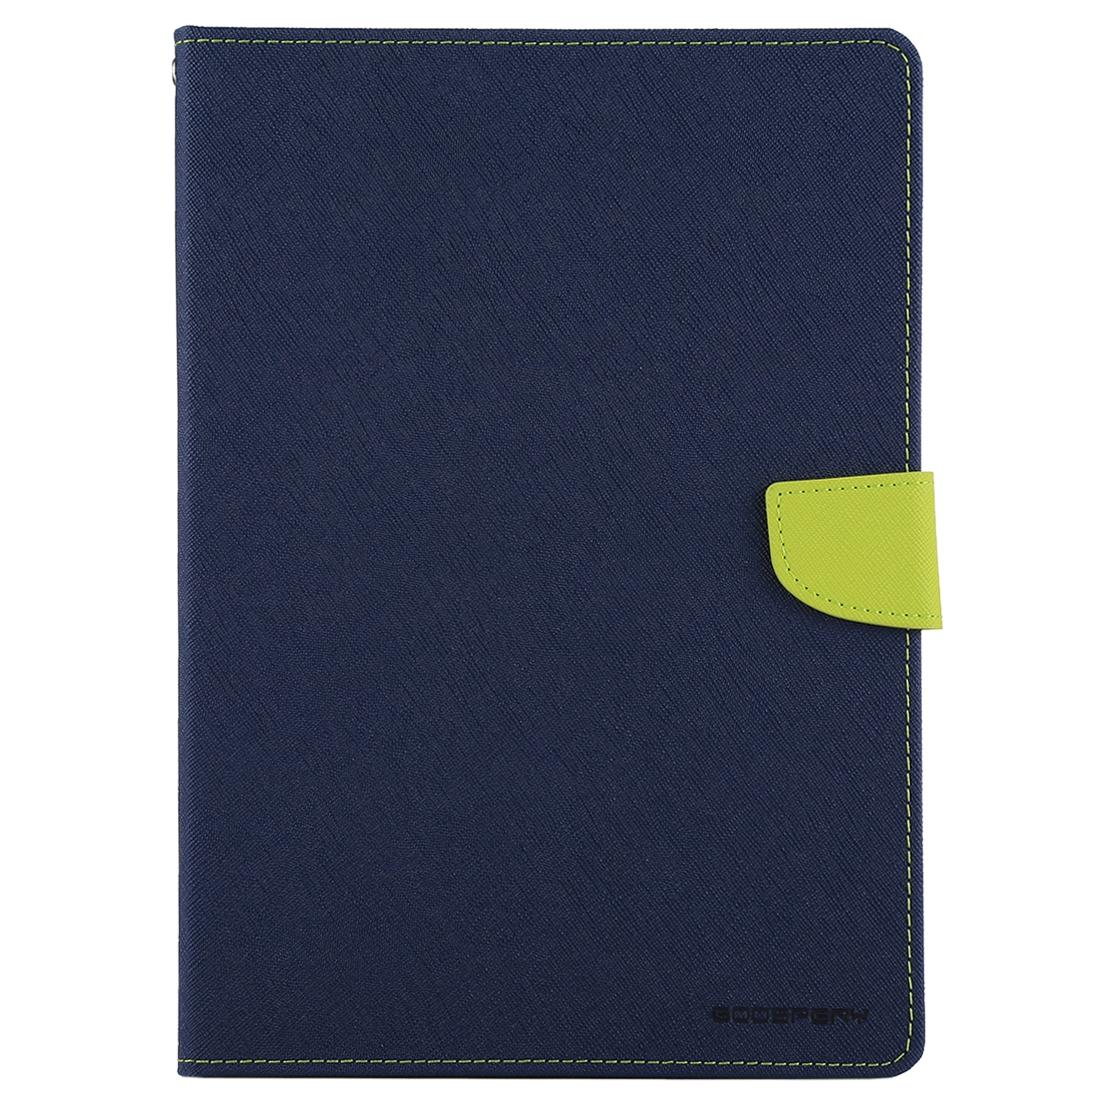 iPad Air Case Cross Texture Leather Case with Sleeve & Slim Profile (Navy Blue)